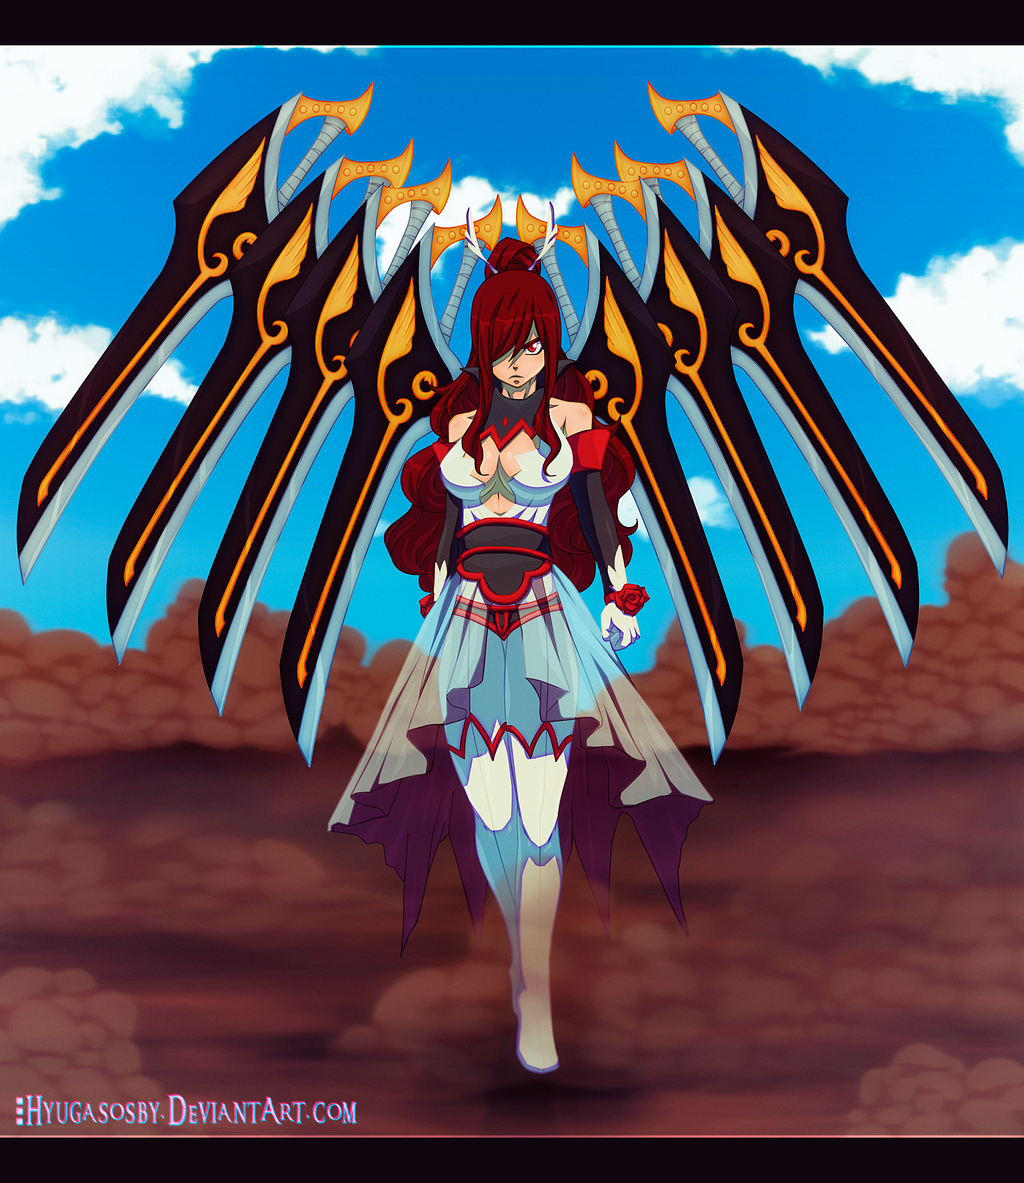 Erza Scarlet Wallpaper: Fairy Tail 431- My Sword Is By Nagadih On DeviantArt